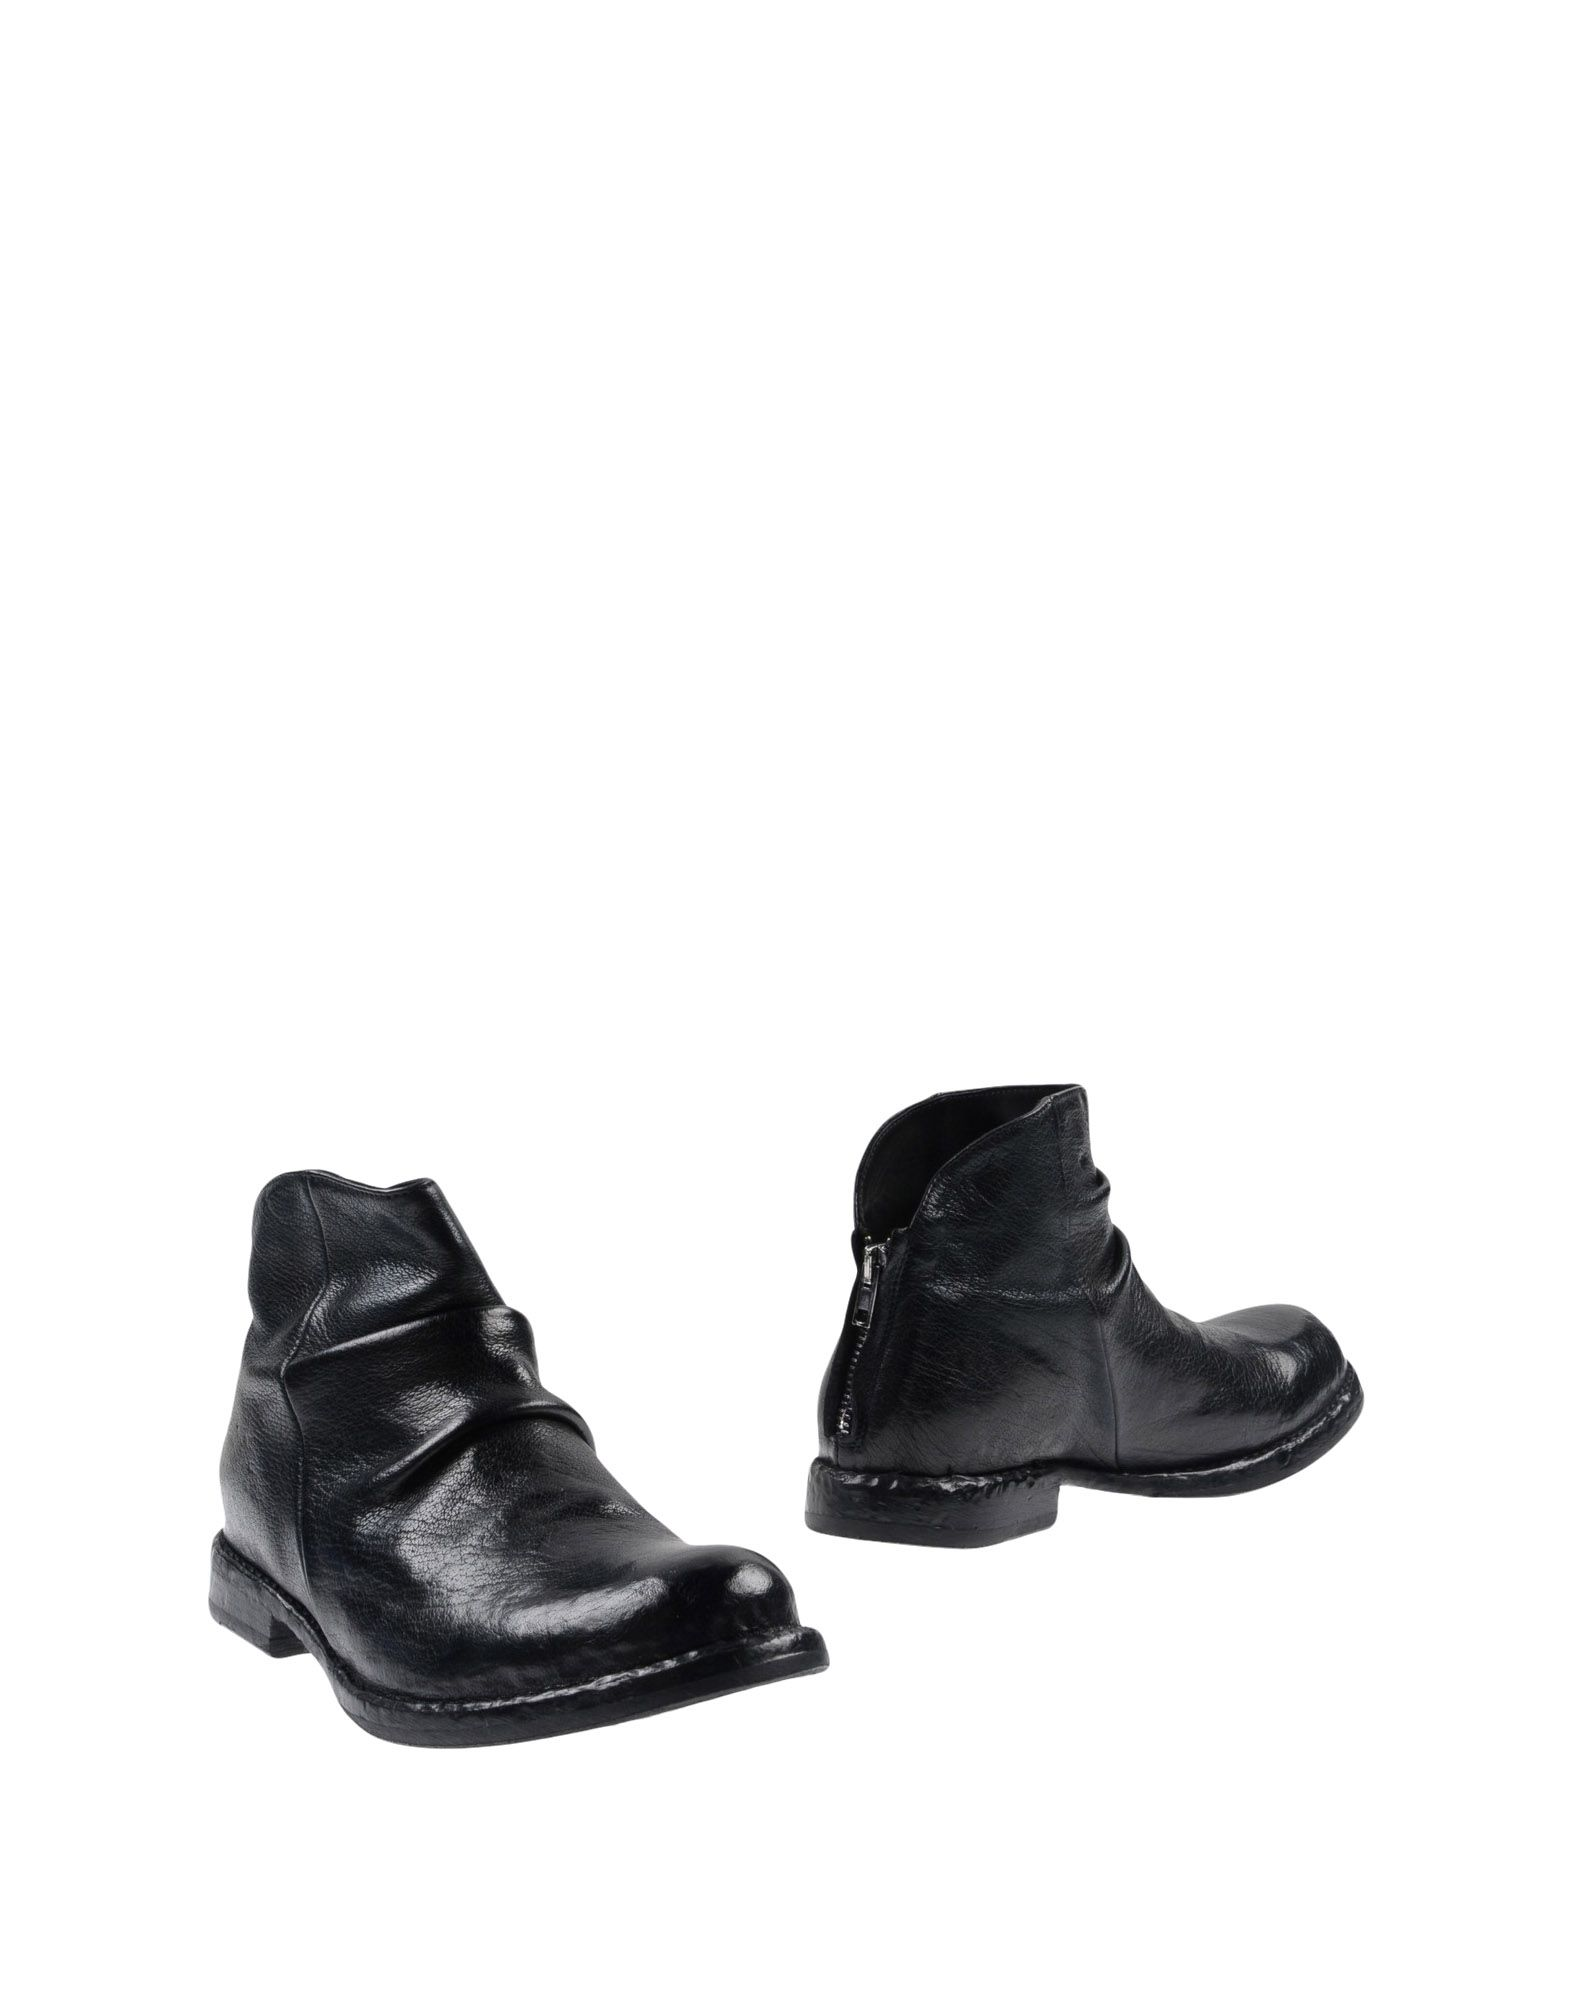 Open Closed    Shoes Ankle Boot - Women Open Closed  Shoes Ankle Boots online on  United Kingdom - 11275777TR 325836